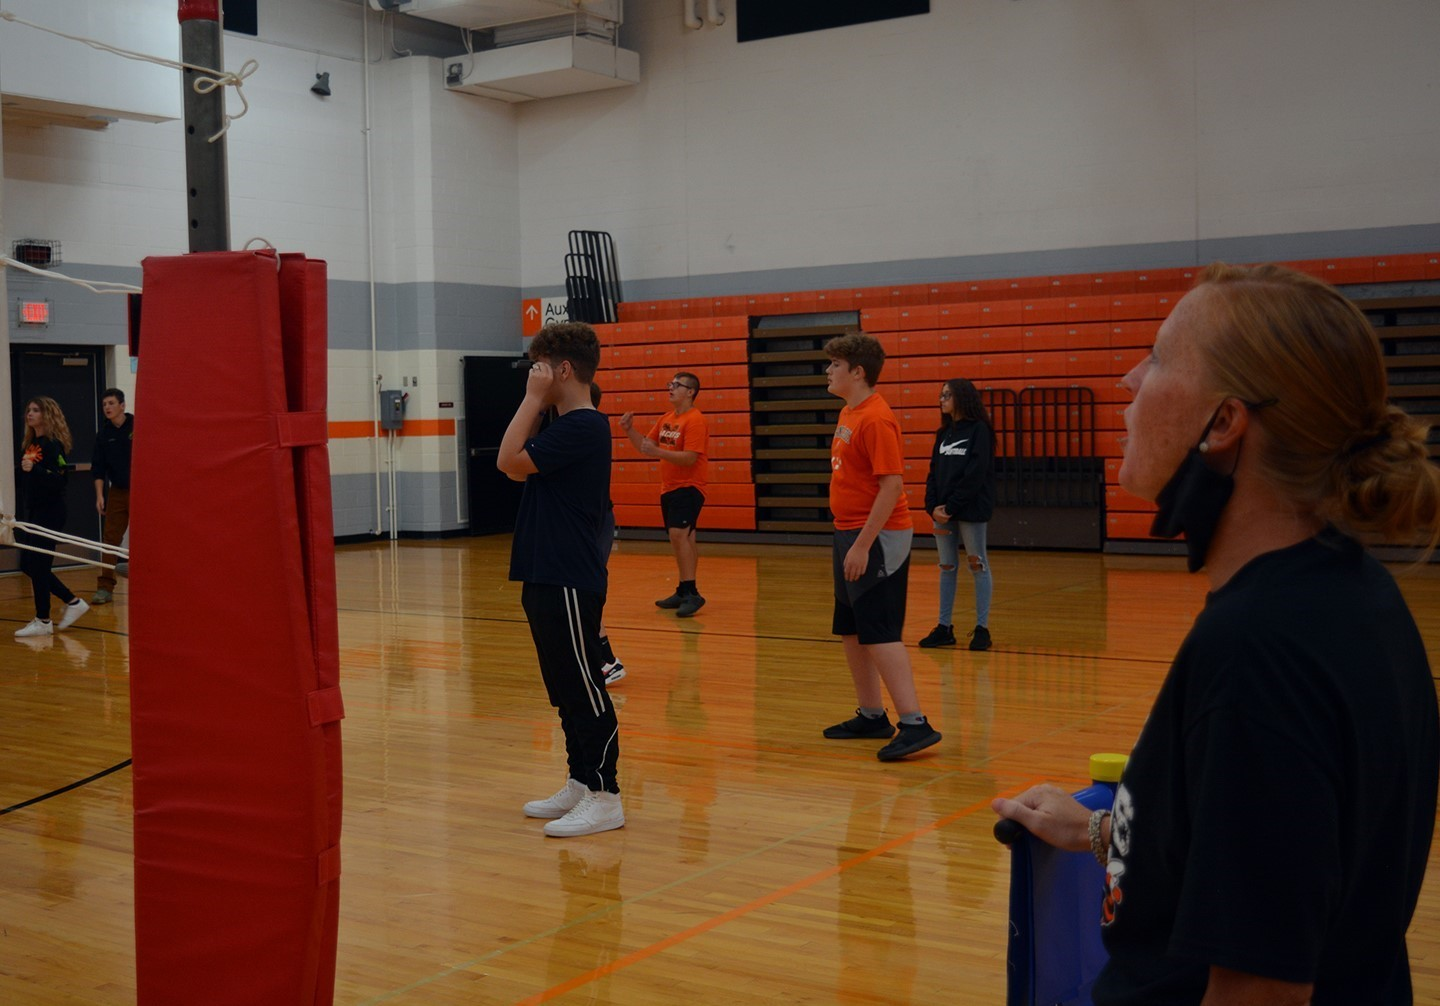 Ms. Fuller teaching volleyball skills in PE class.